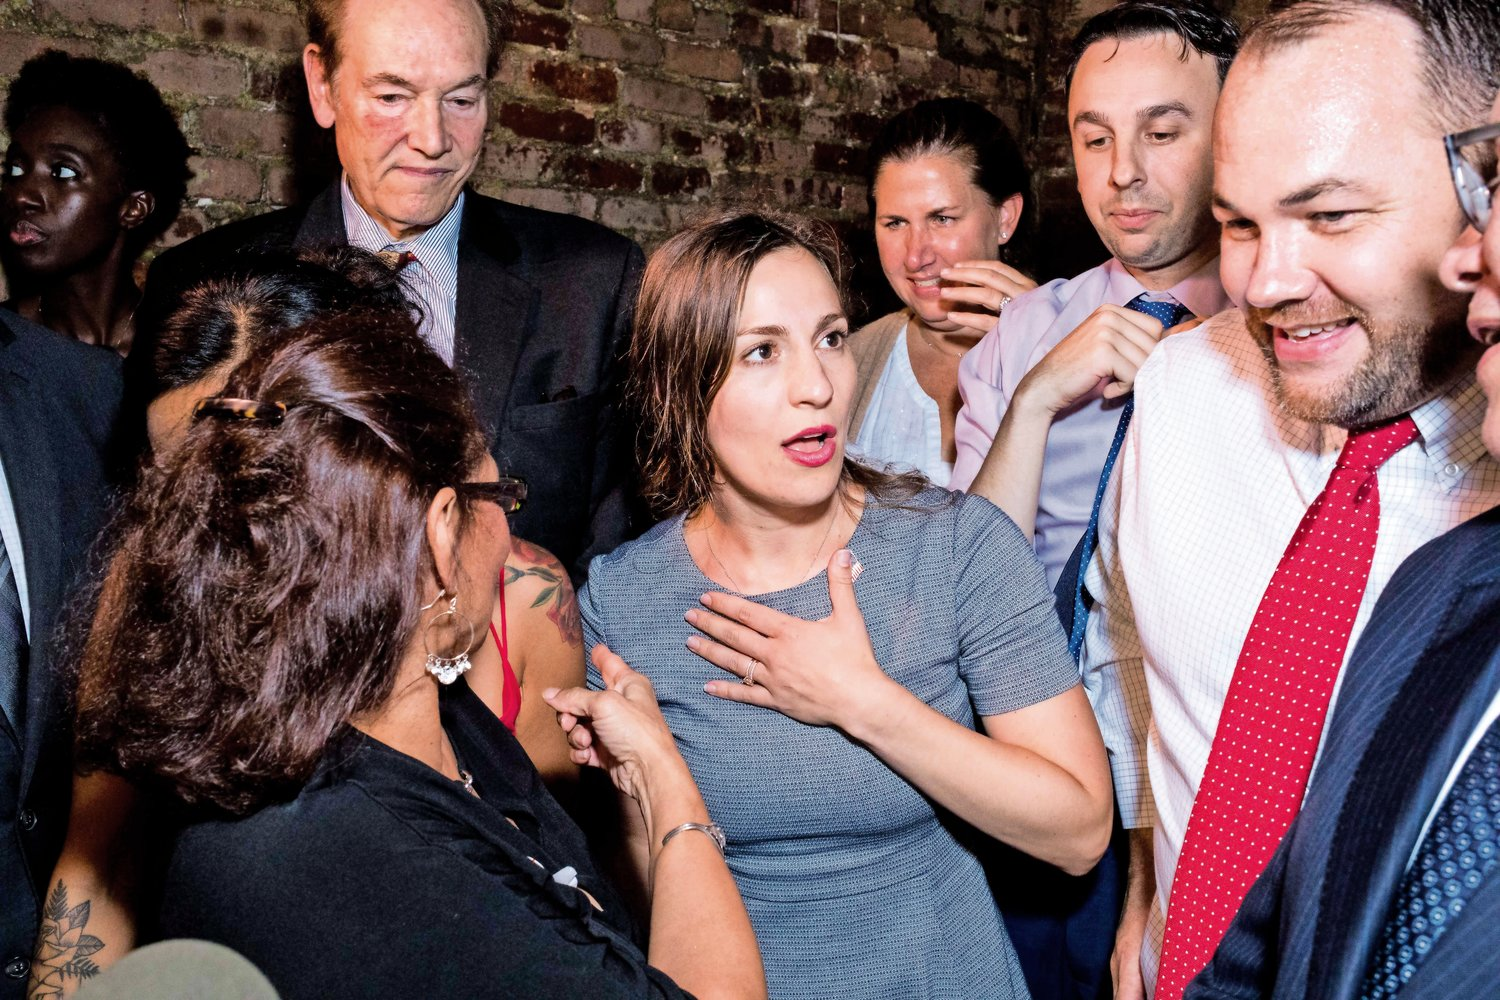 Alessandra Biaggi approaches the stage at the Bronx Alehouse in Kingsbridge to give a victory speech after toppling state Sen. Jeffrey Klein in the Democratic primary on Sept. 13.